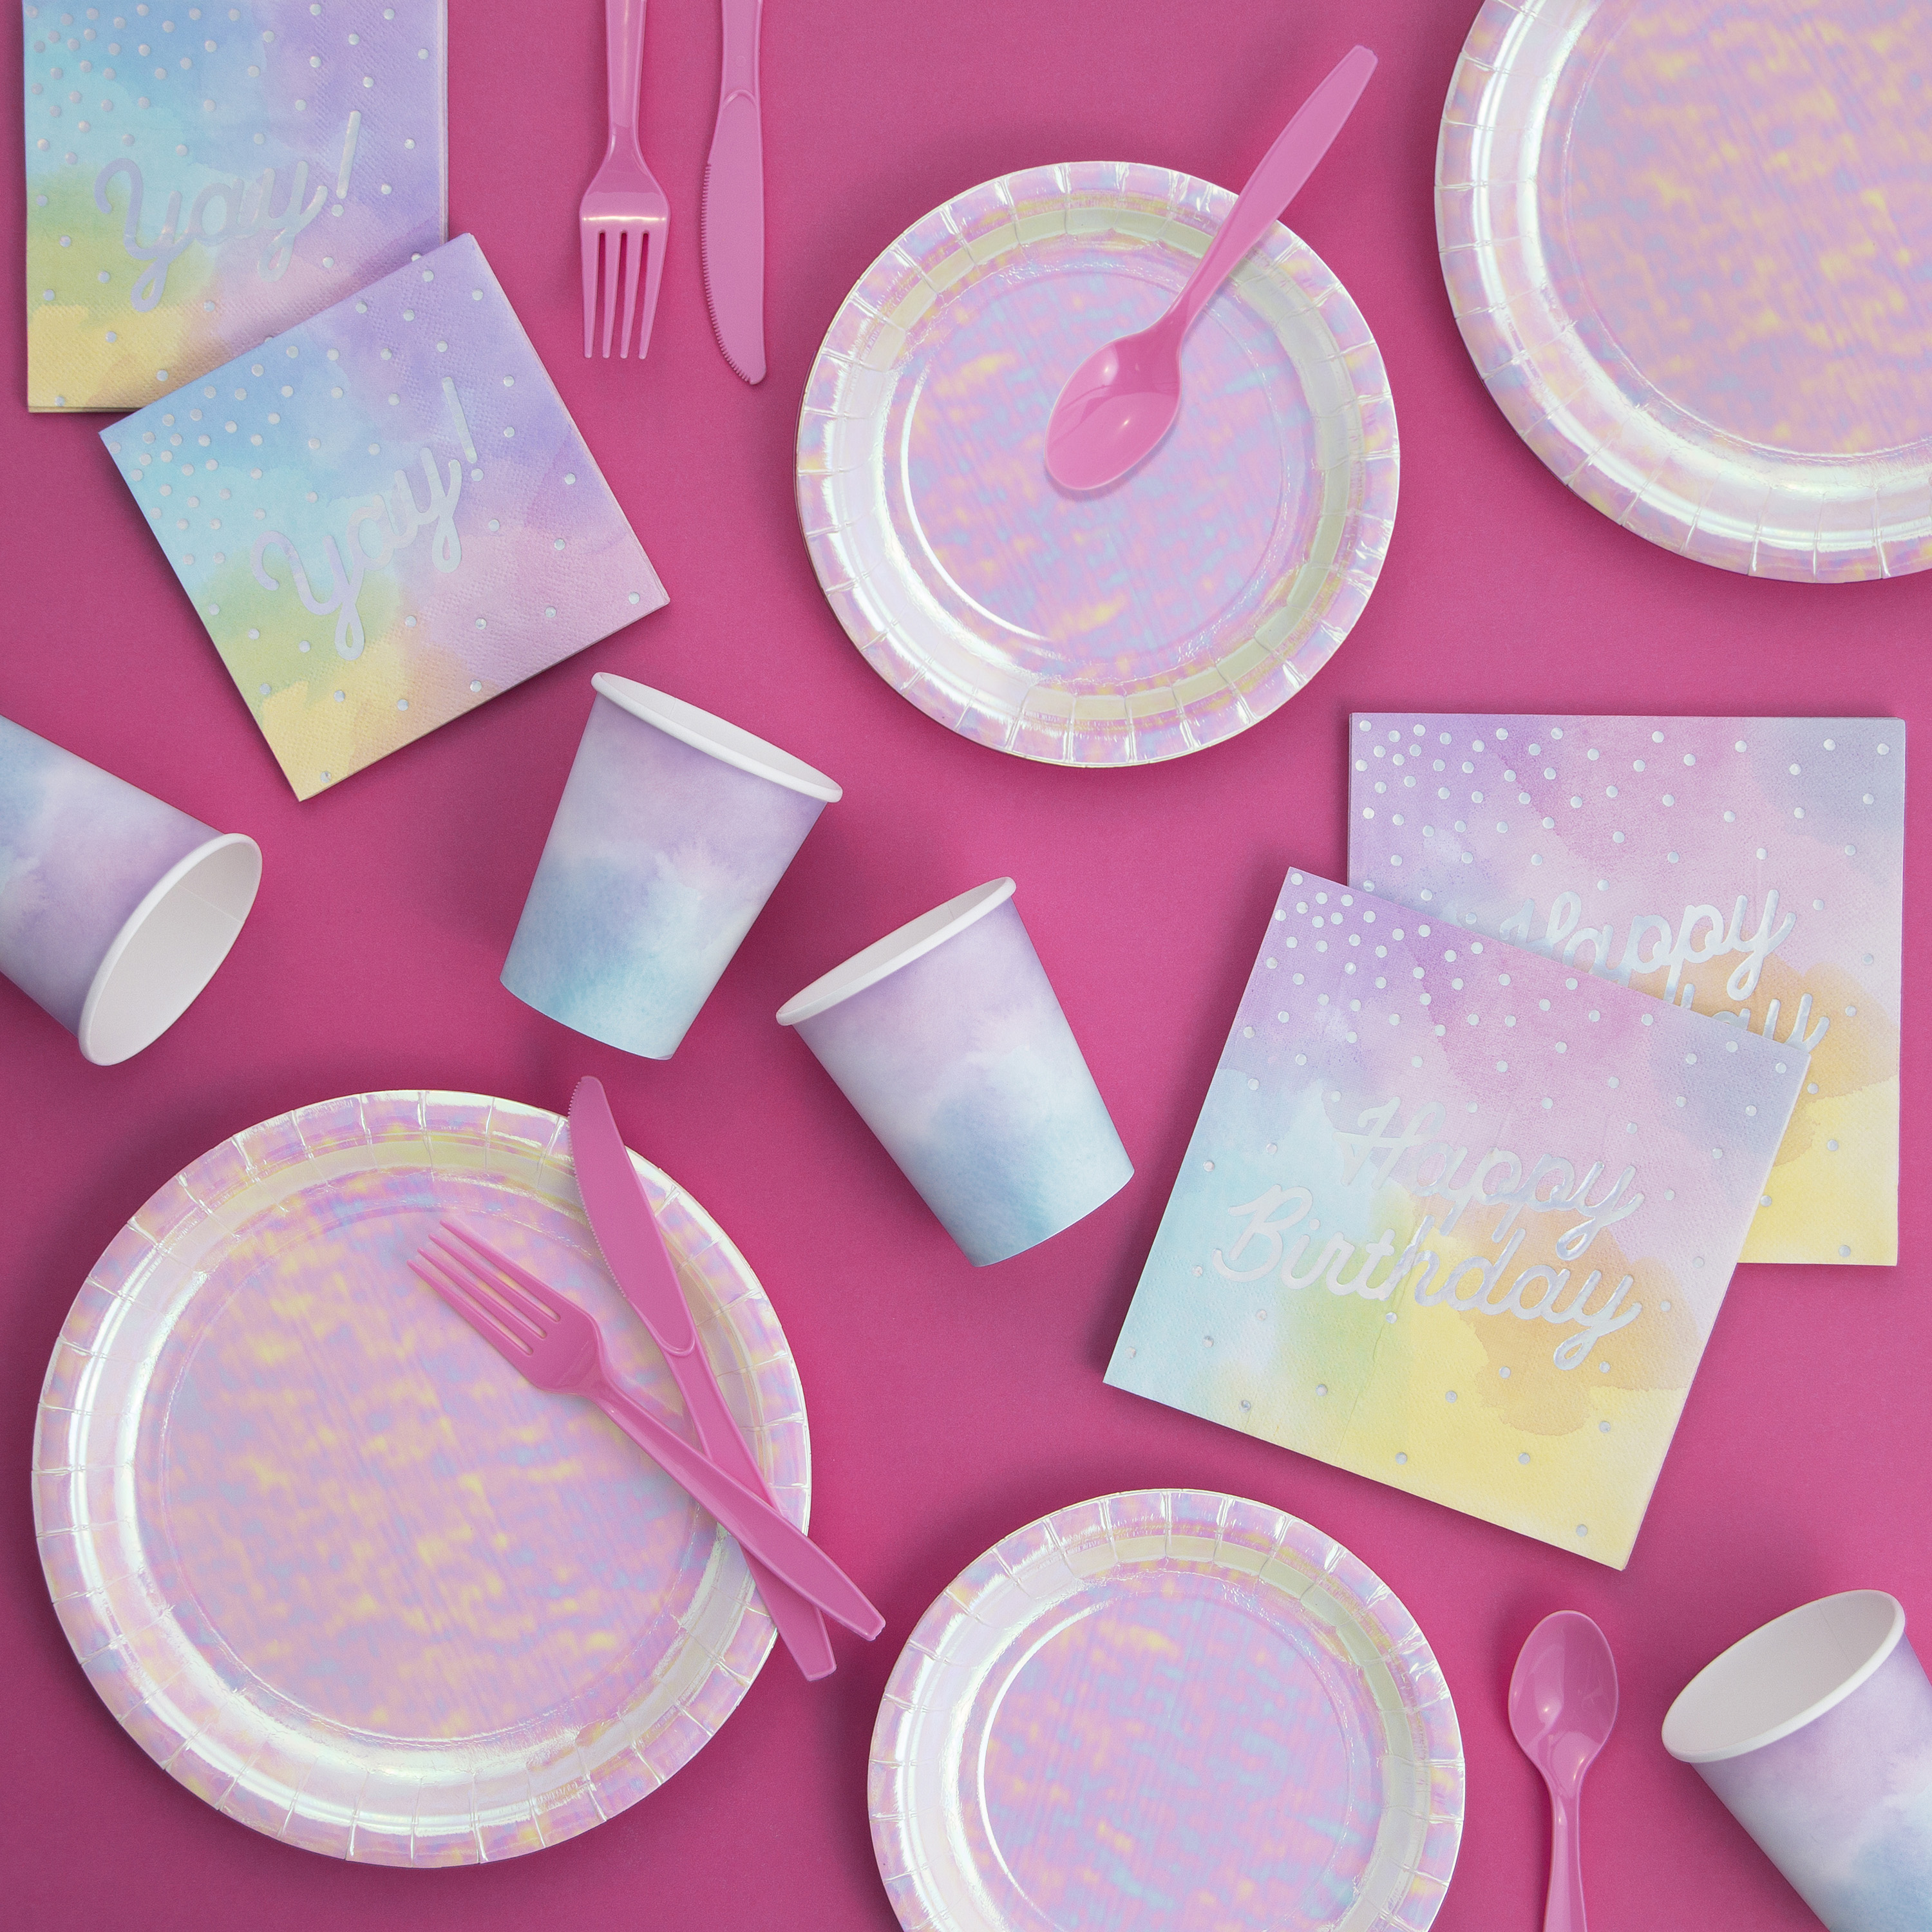 Iridescent Party Birthday Party Supplies Kit